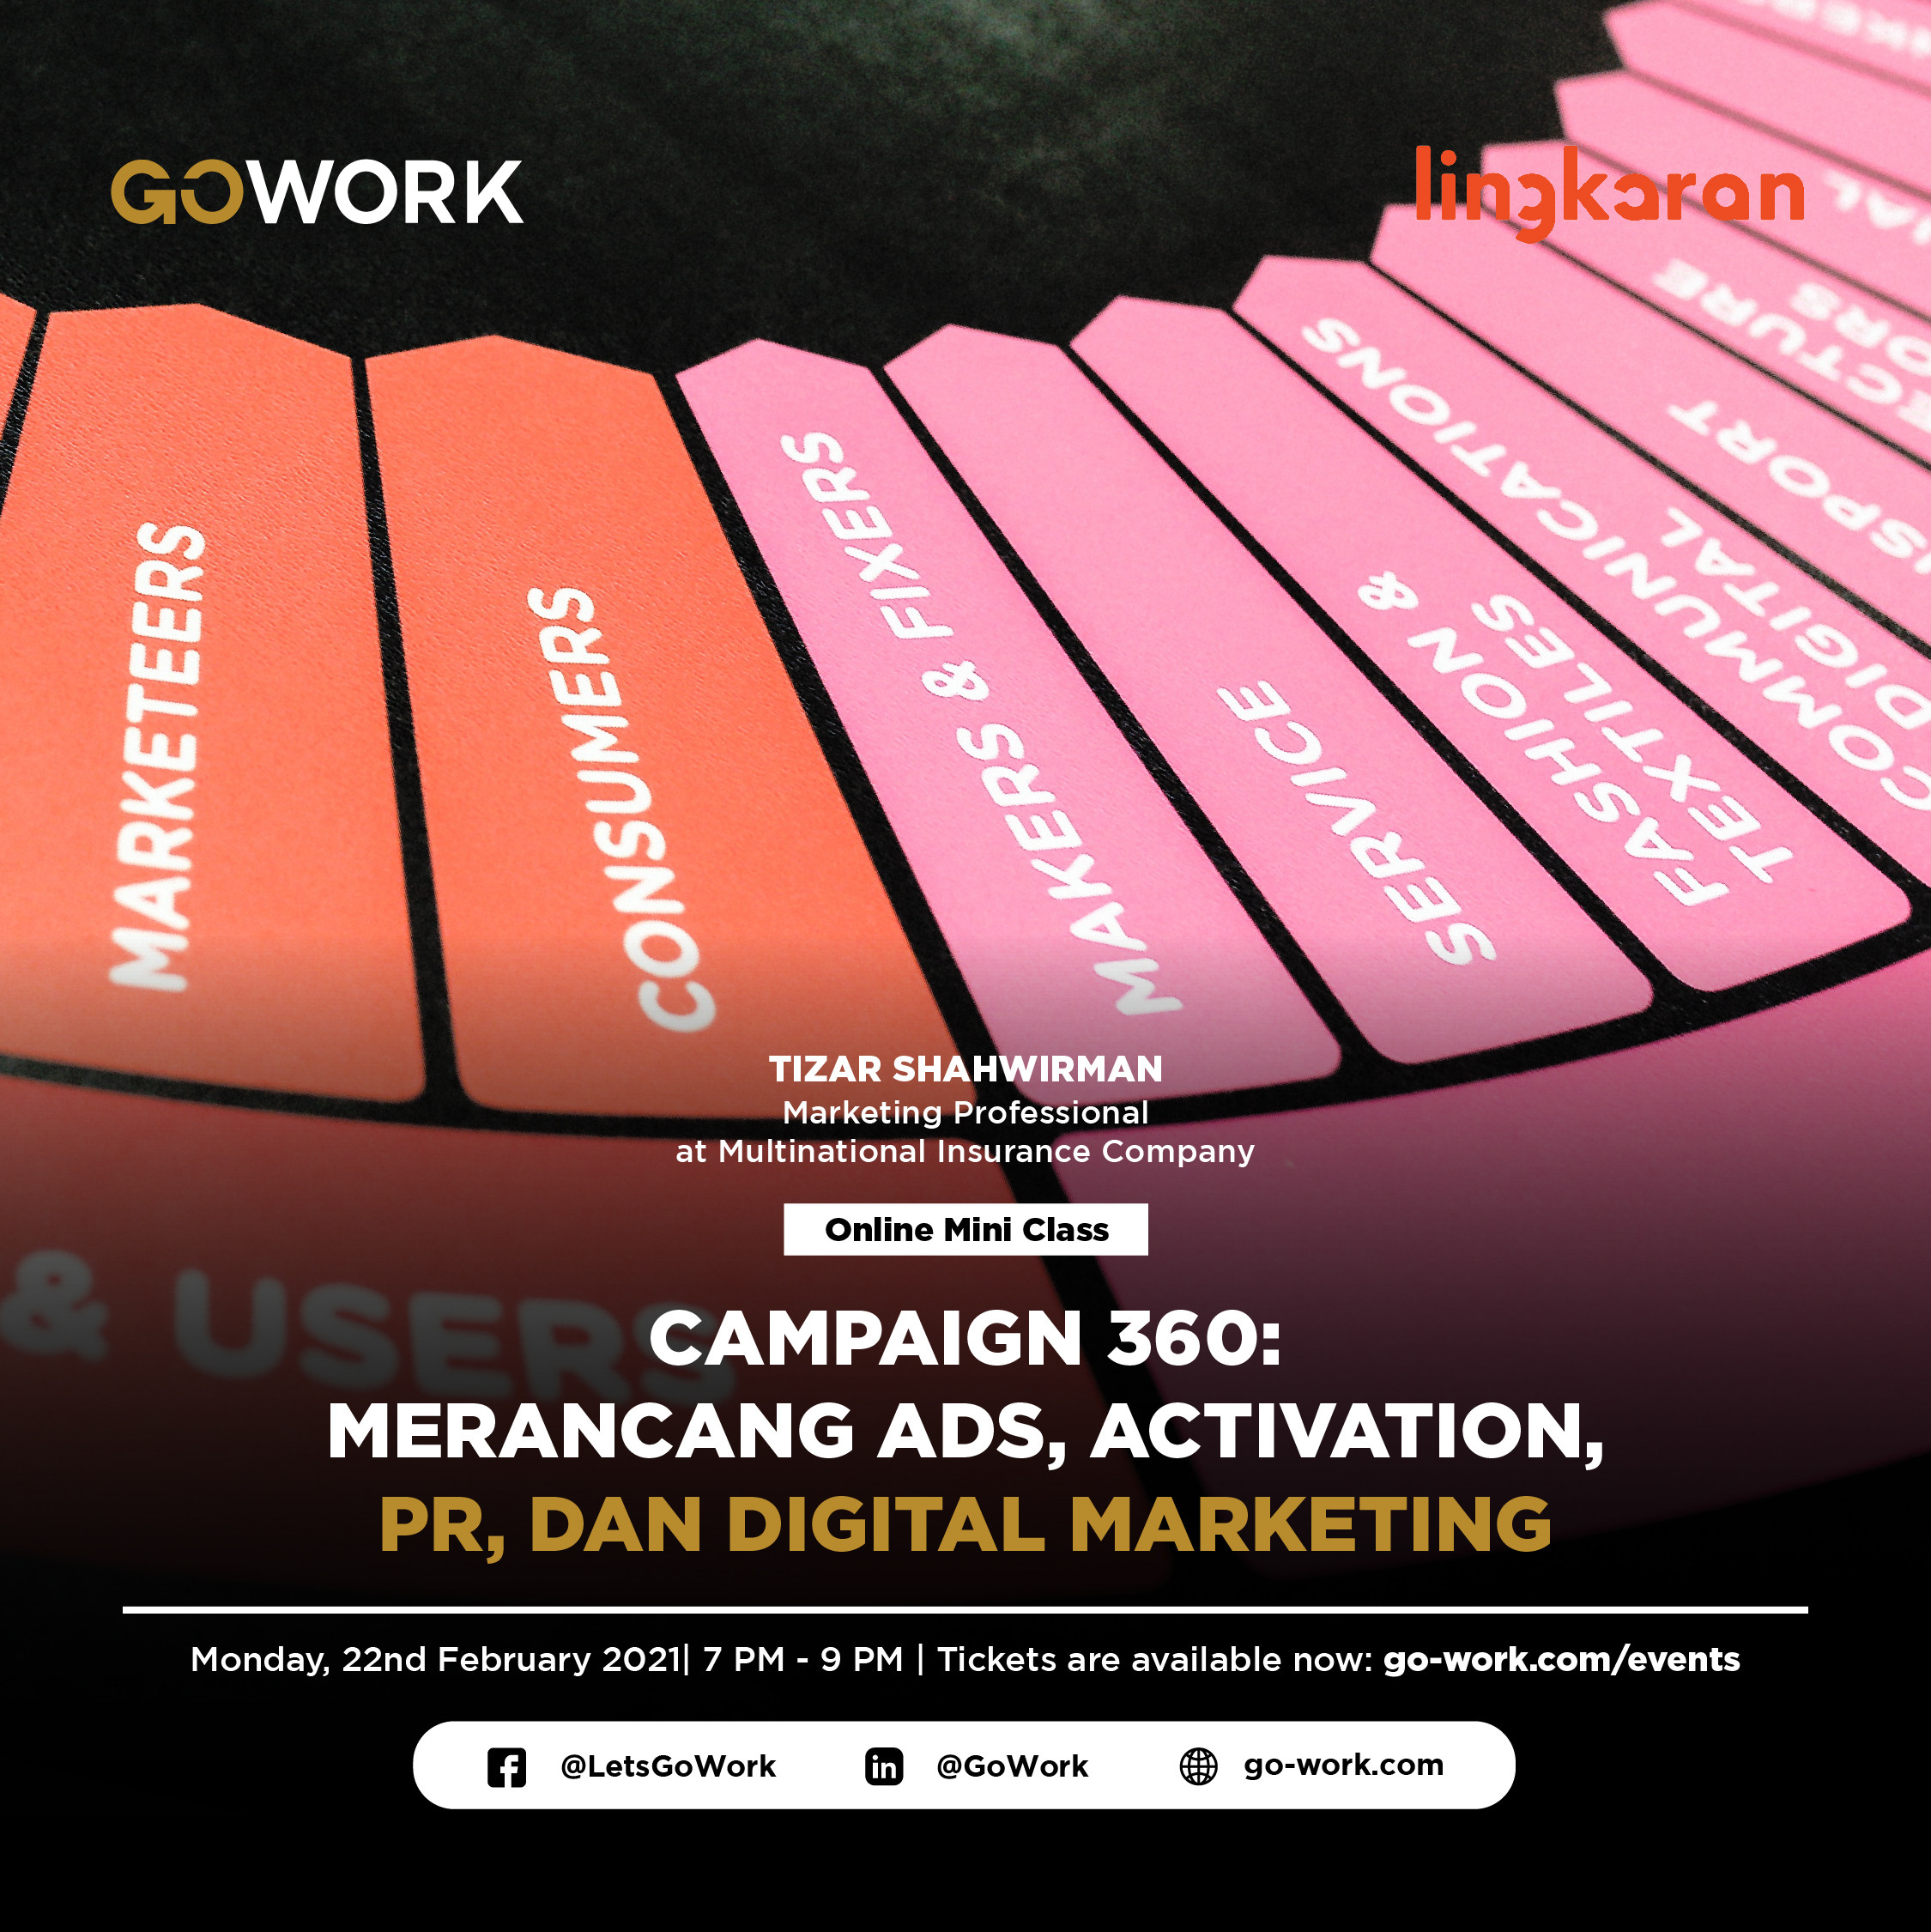 Campaign 360: Merancang Ads, Activation, PR, dan Digital Marketing